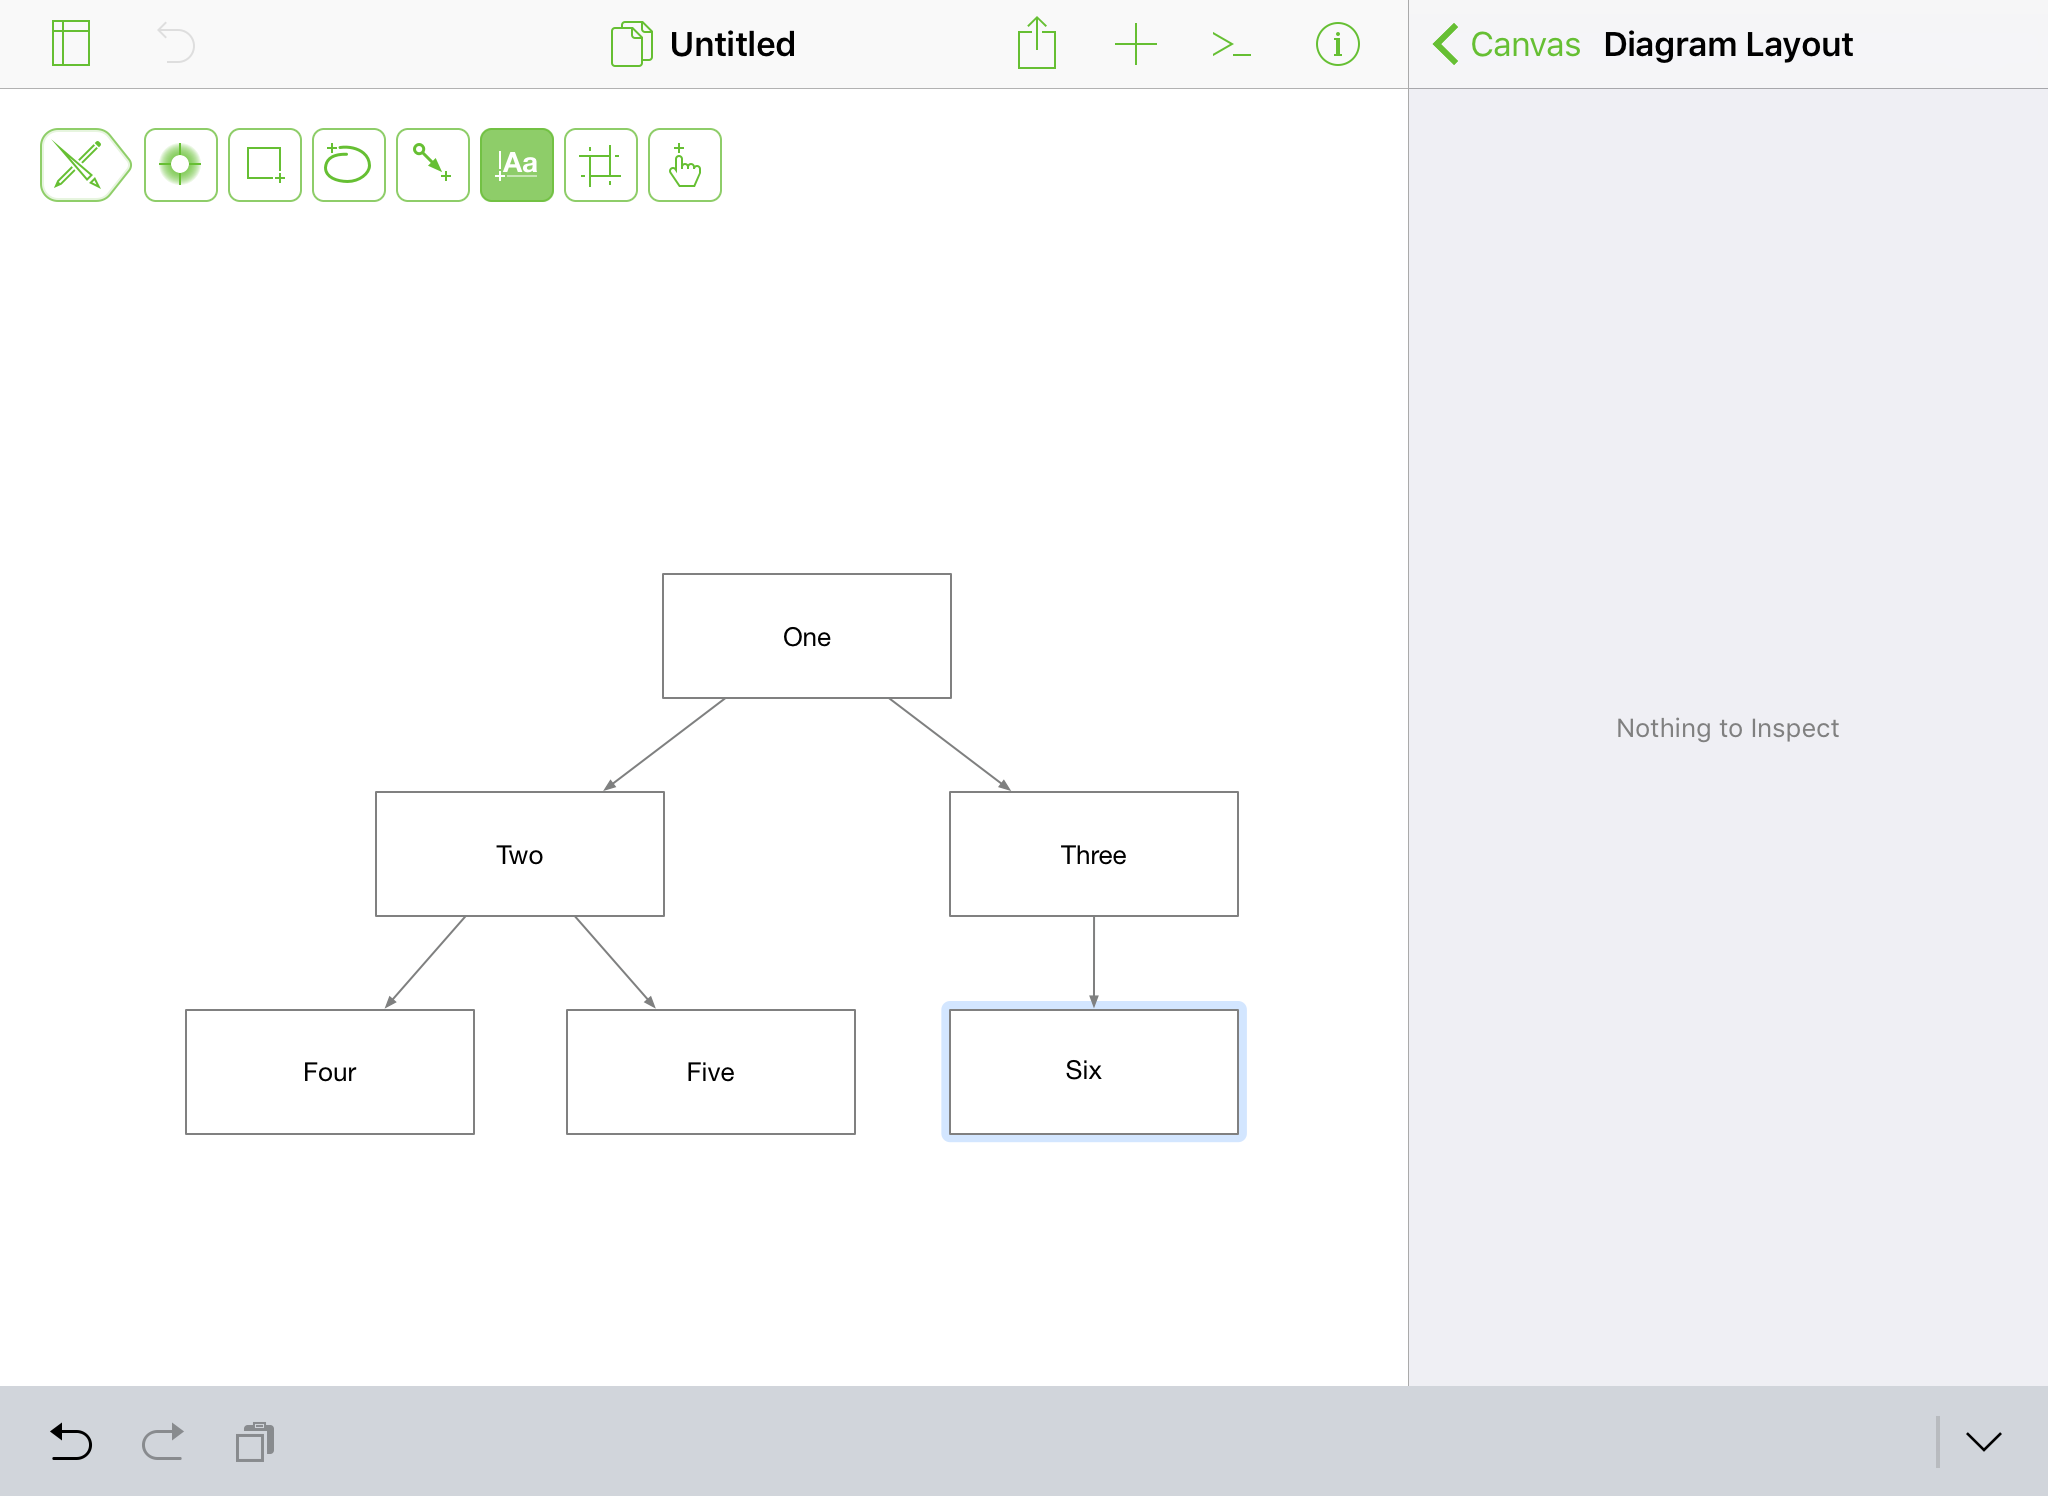 Create a Hierarchical diagram - Support - The Omni Group on